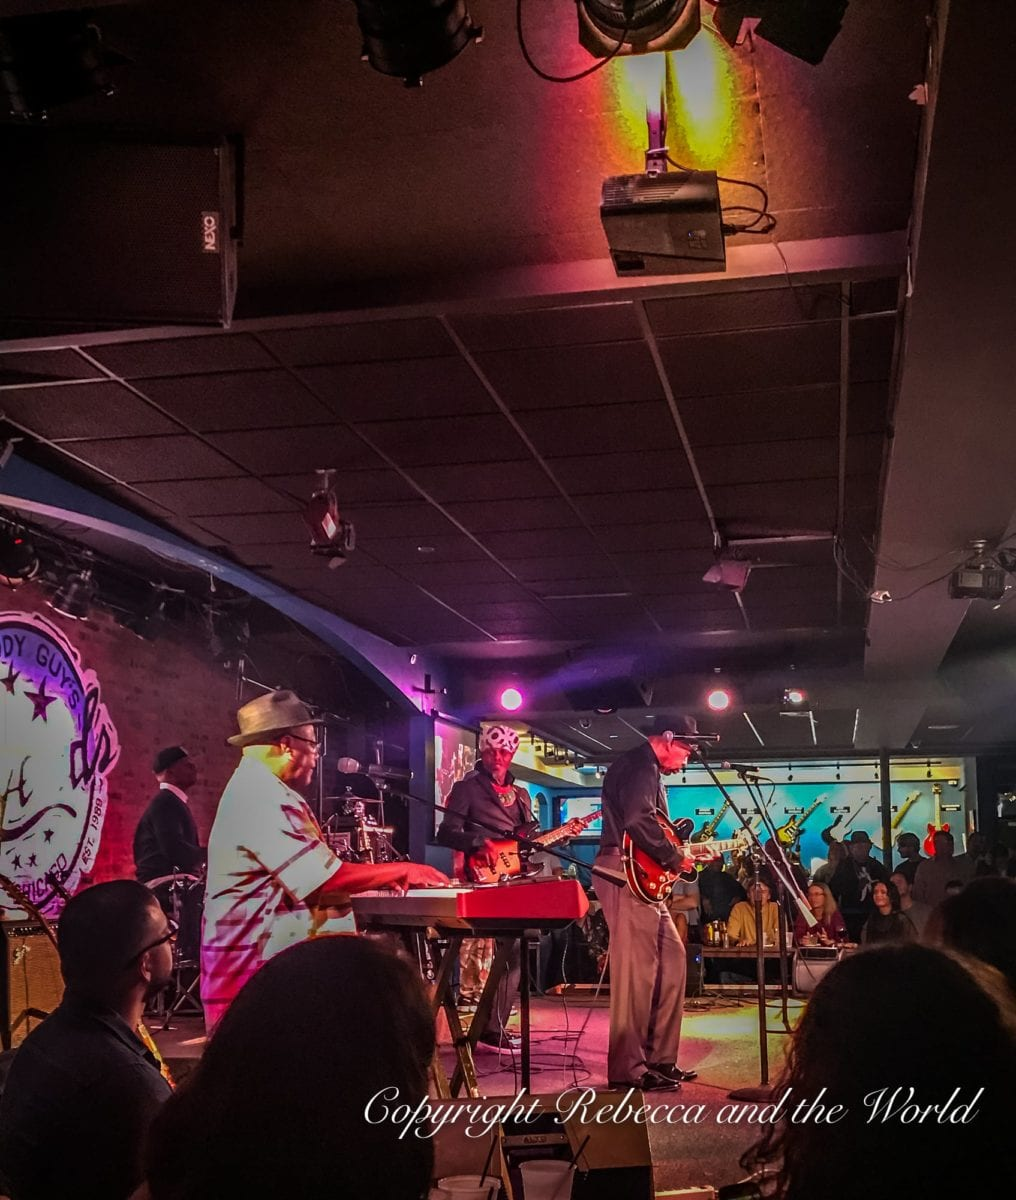 Buddy Guy's Legends is a fun night out of blues music